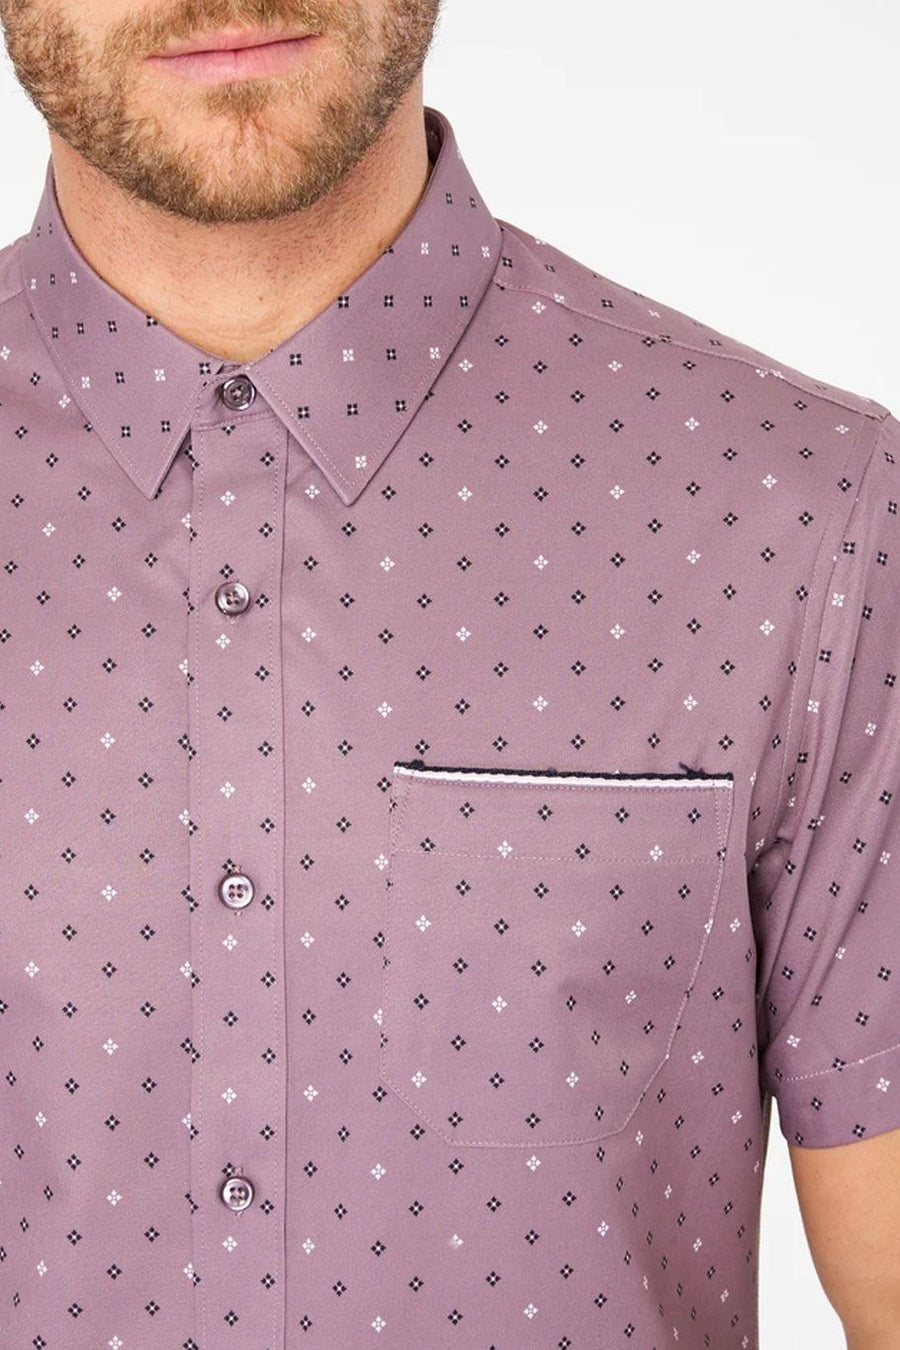 Highway Star 4-Stretch Polo - Grape - Shore